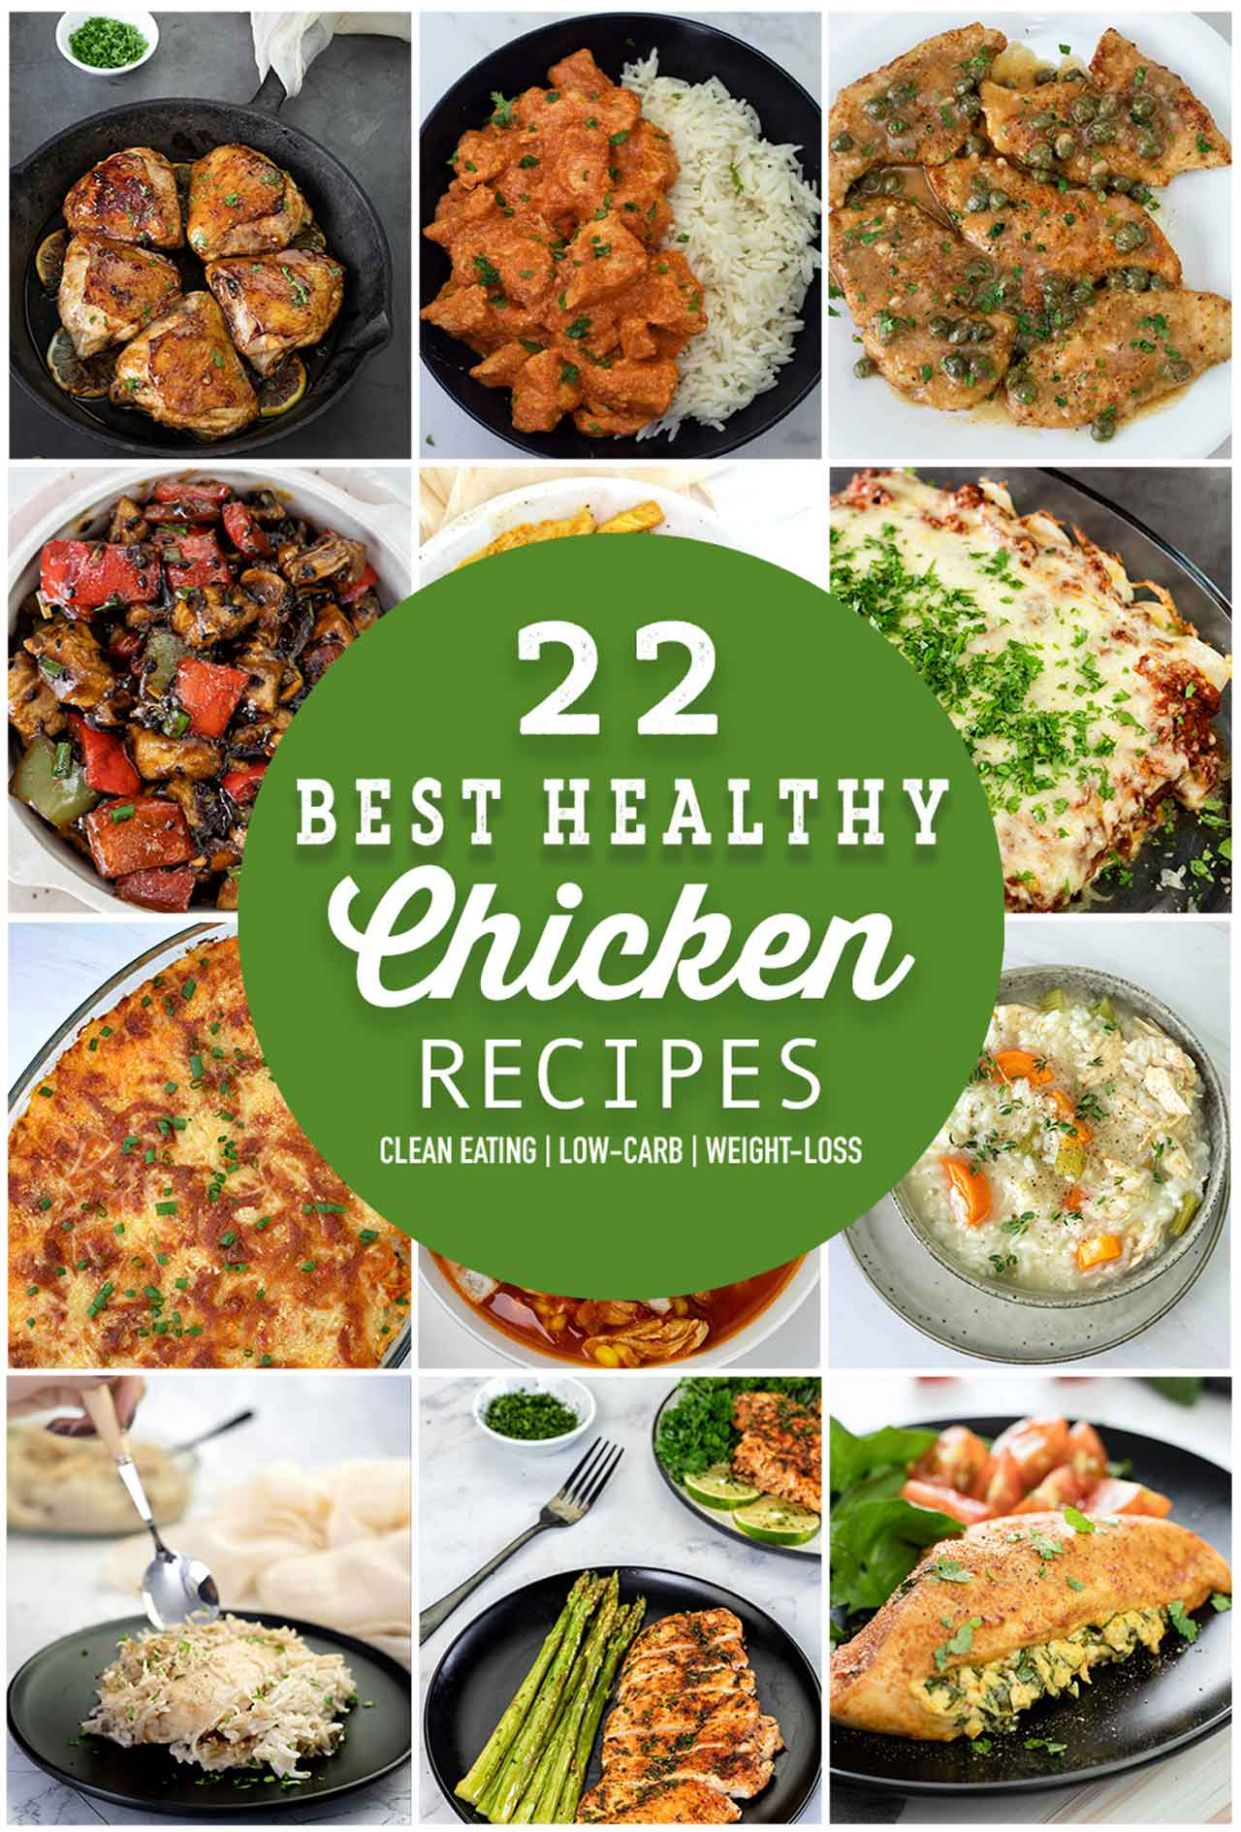 11 Best Healthy Chicken Recipes - A List For The White Meat Lovers